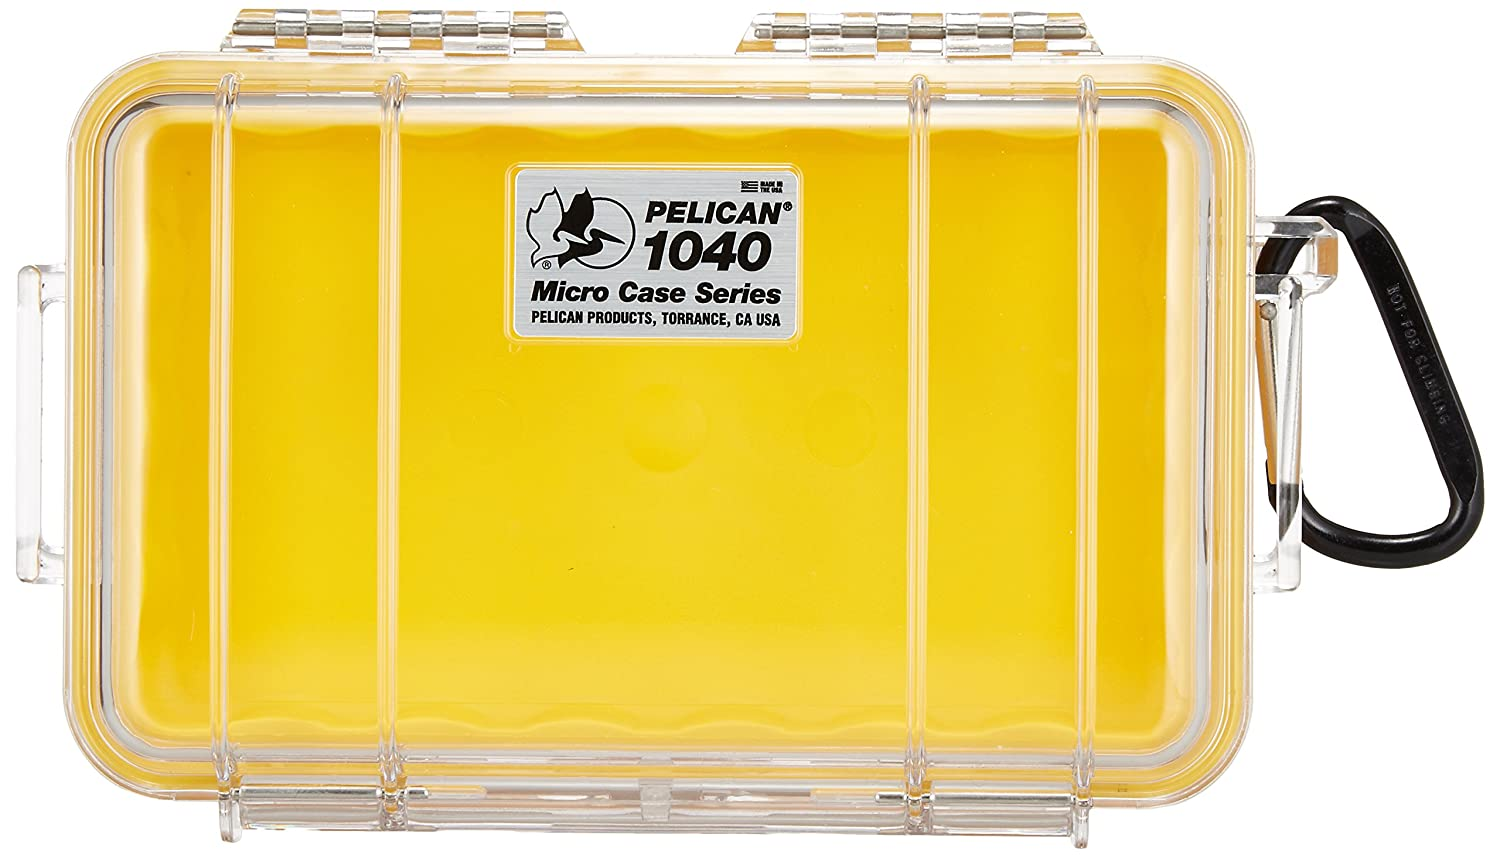 Waterproof Case | Pelican 1040 Micro Case - for iPhone, cell phone, GoPro, camera, and more (Yellow/Clear) Pelican Products Inc. 1040-027-100